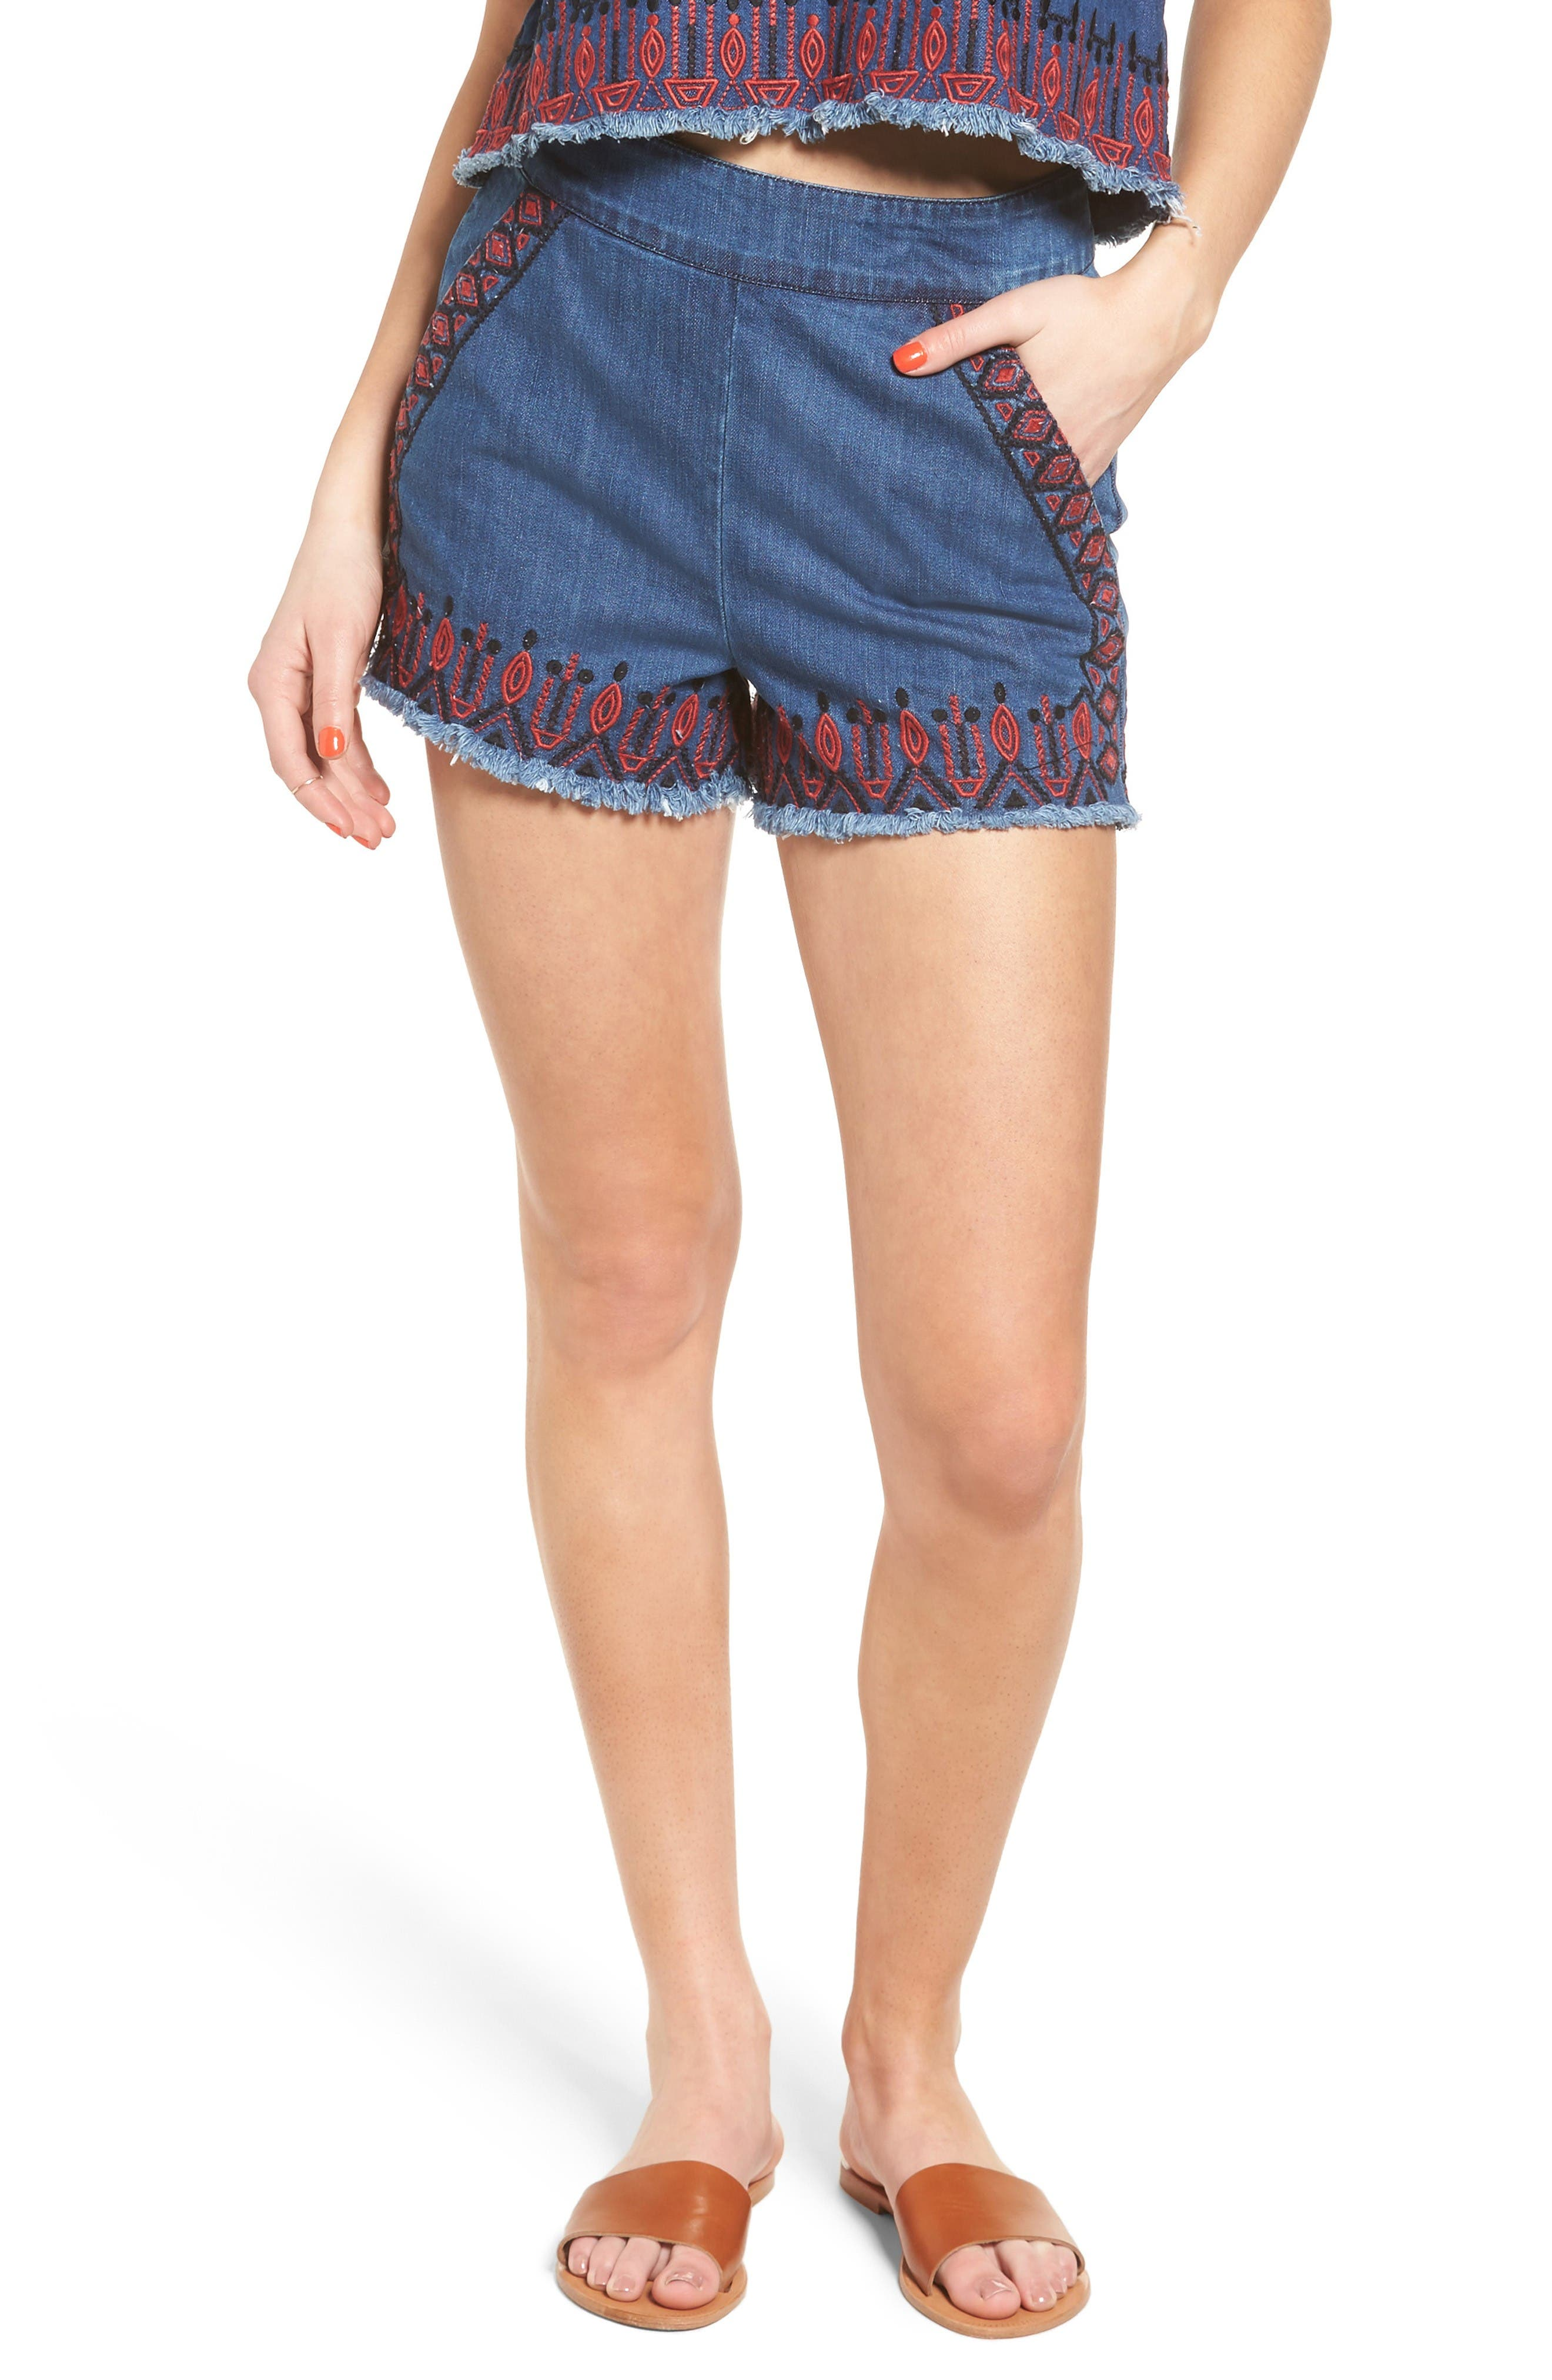 Alternate Image 1 Selected - BLANKNYC Embroidered Denim Shorts (Wild Ones)